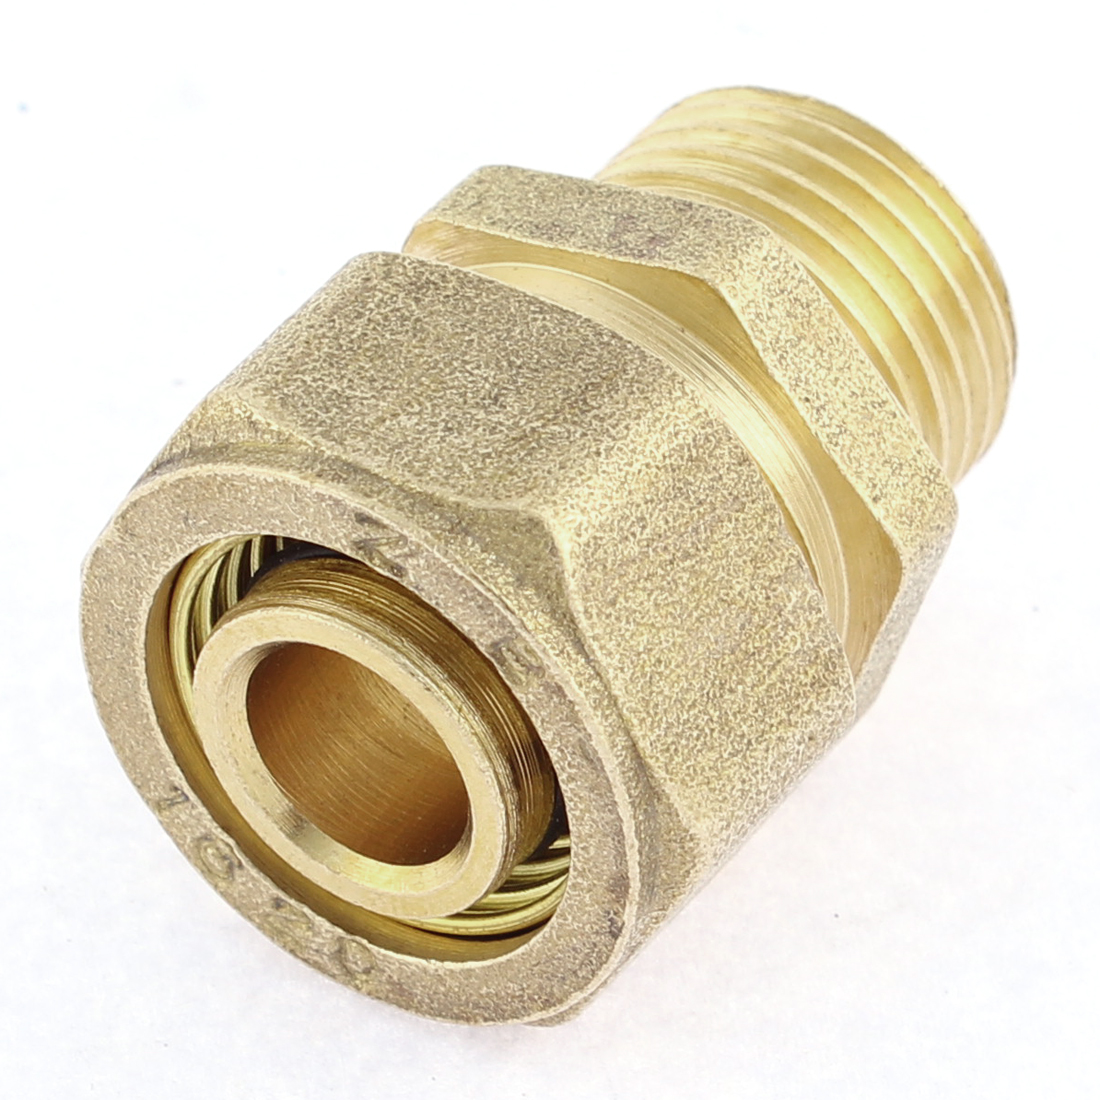 20 x 16mm Male Brass Hex Nipple Connector Gold Tone